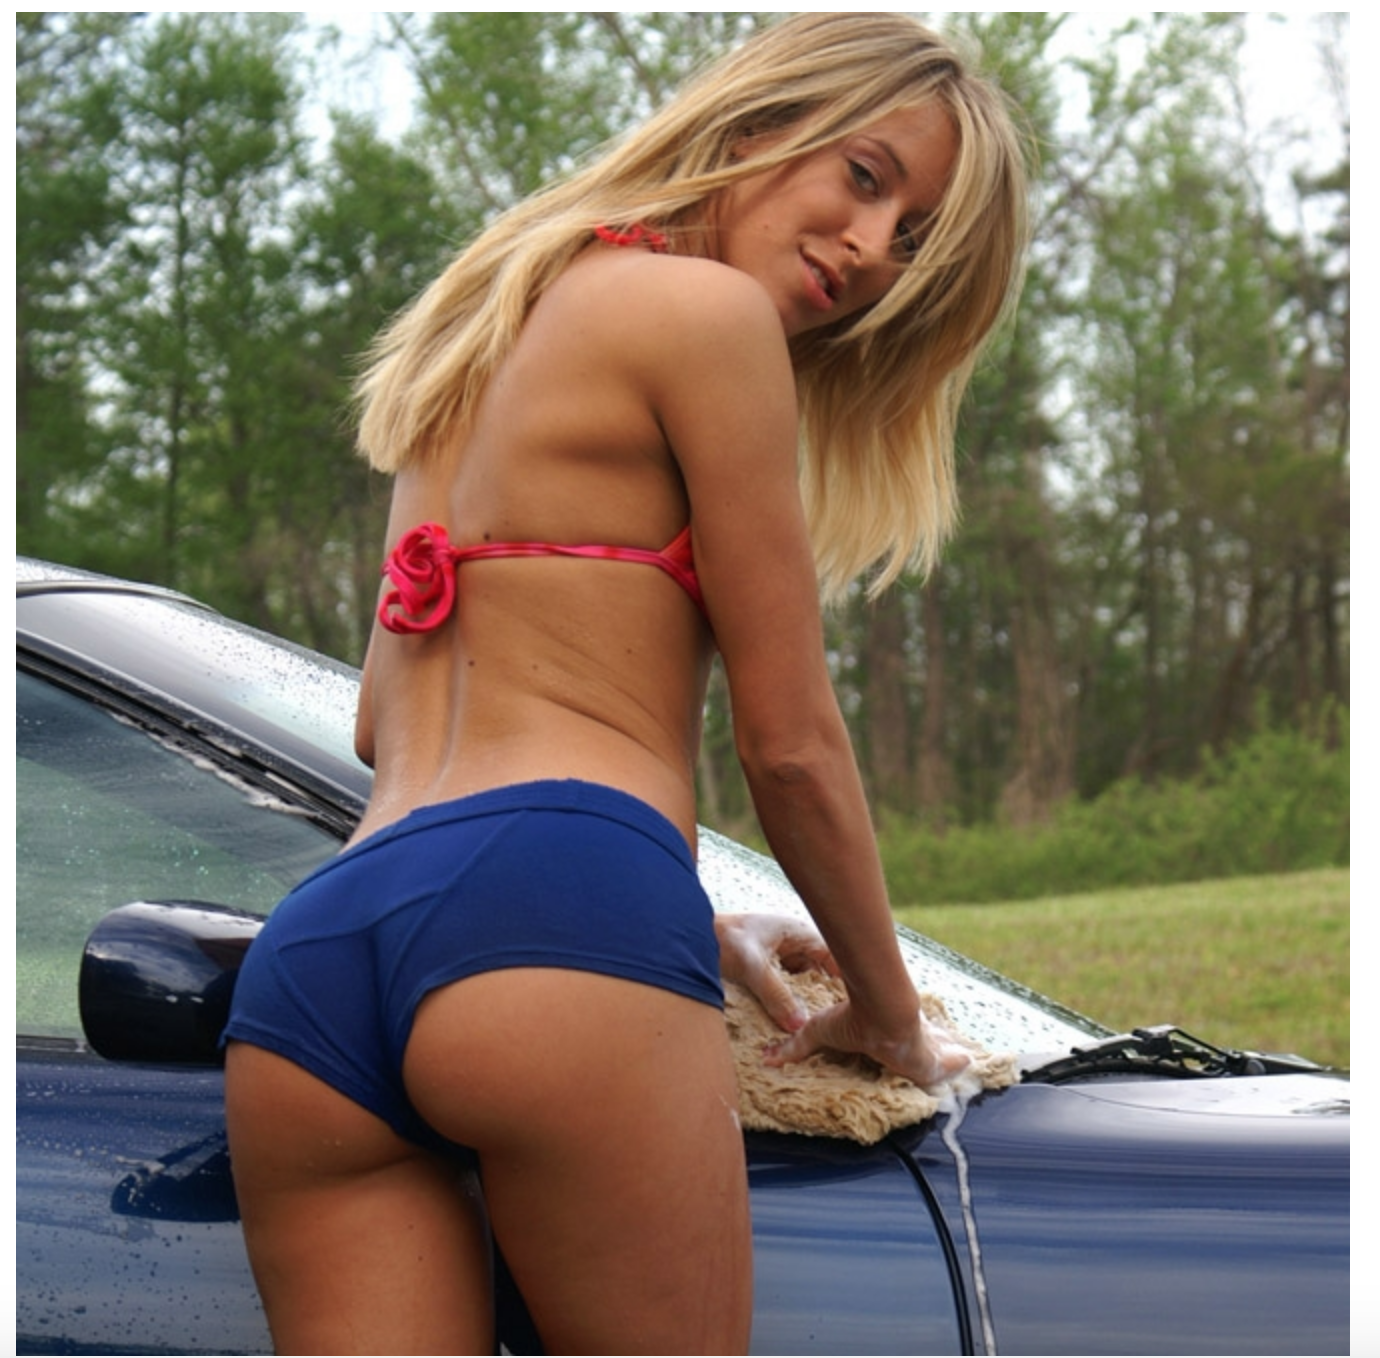 incredible butt blonde car wash